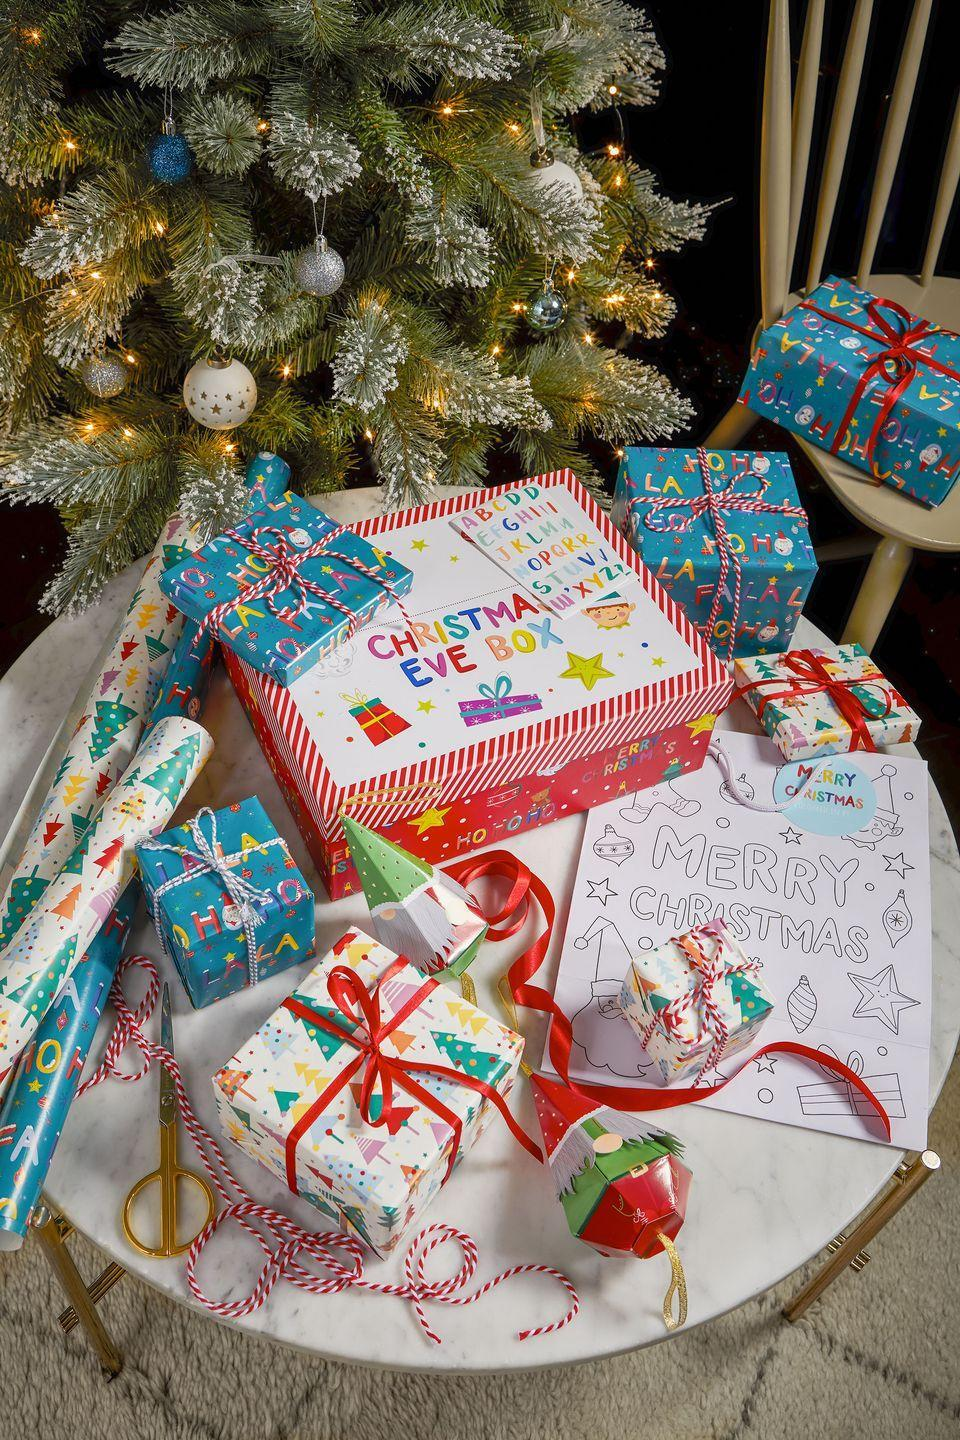 """<p>'Introduce festive fun when wrapping the kid's presents with Playful Brights gift wrap collection,' say Tesco. 'Spread Christmas joy with colourful wrapping and personalised <a href=""""https://www.housebeautiful.com/uk/lifestyle/shopping/a22708684/christmas-eve-box-ideas/"""" rel=""""nofollow noopener"""" target=""""_blank"""" data-ylk=""""slk:Christmas Eve boxes"""" class=""""link rapid-noclick-resp"""">Christmas Eve boxes</a>.'</p><p><strong>Follow House Beautiful on <a href=""""https://www.instagram.com/housebeautifuluk/"""" rel=""""nofollow noopener"""" target=""""_blank"""" data-ylk=""""slk:Instagram"""" class=""""link rapid-noclick-resp"""">Instagram</a>.</strong></p>"""